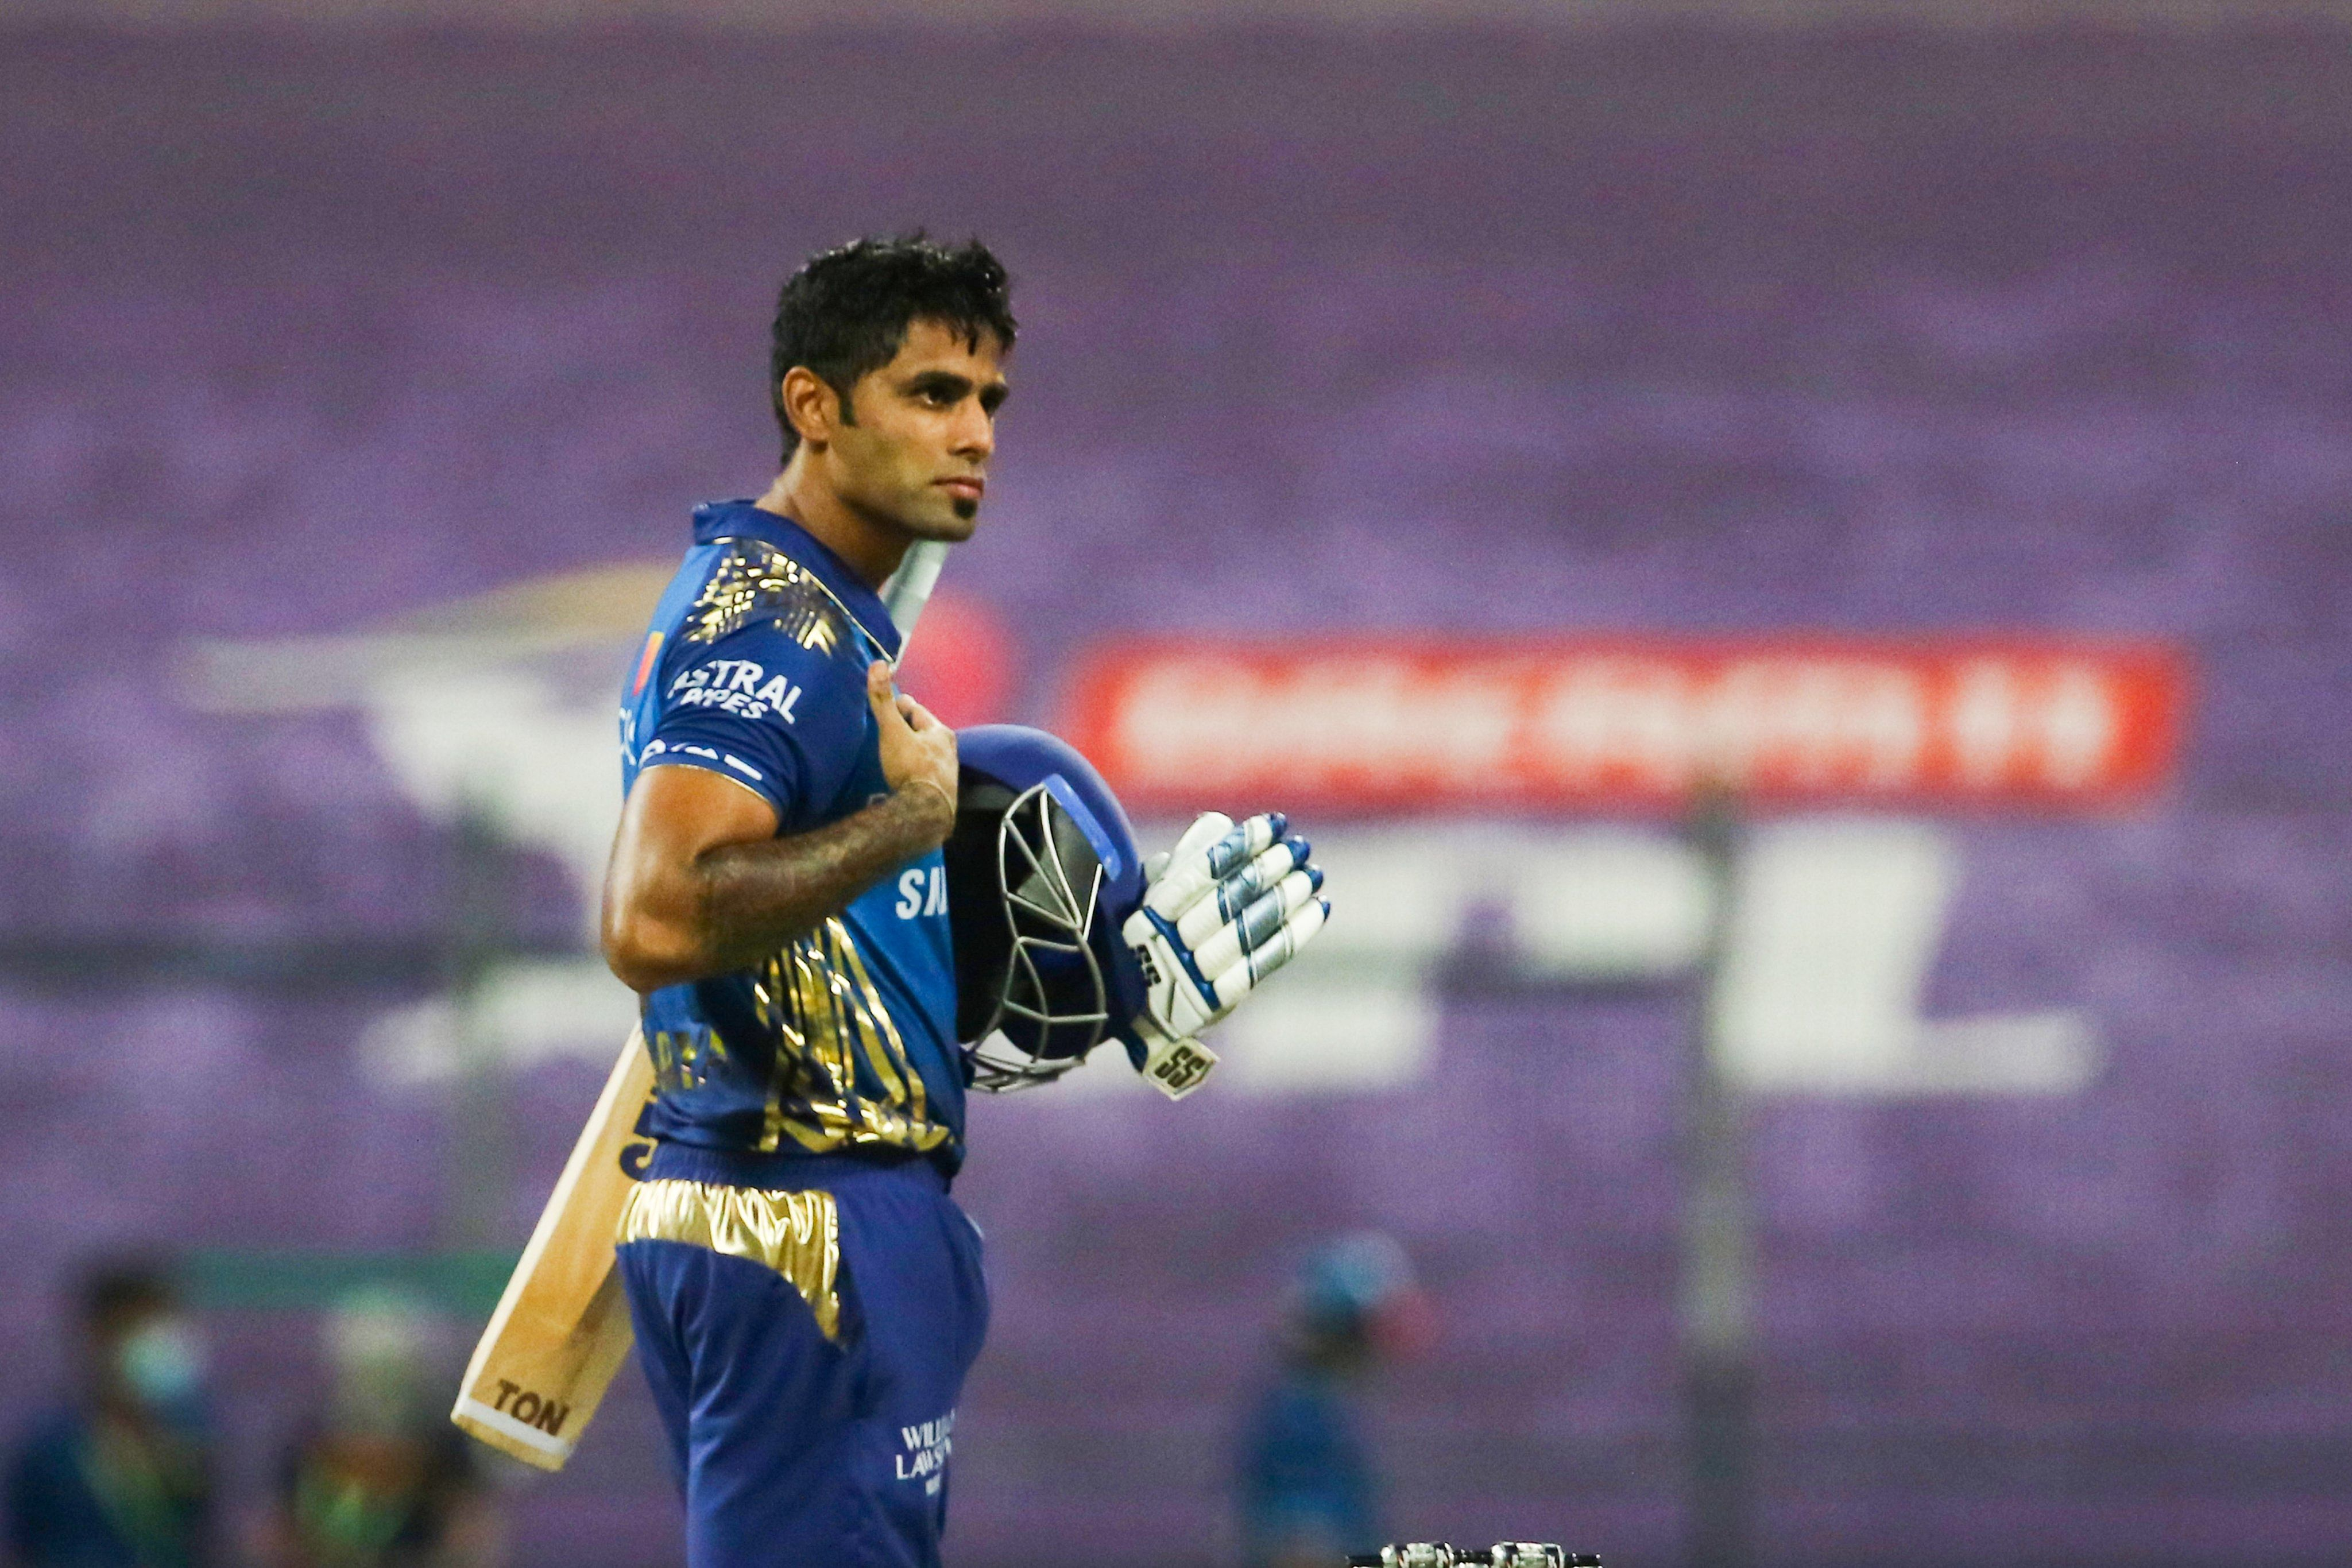 Apna Time Aayega: Here's how Suryakumar Yadav reacted after leading MI to 5-wicket win over RCB